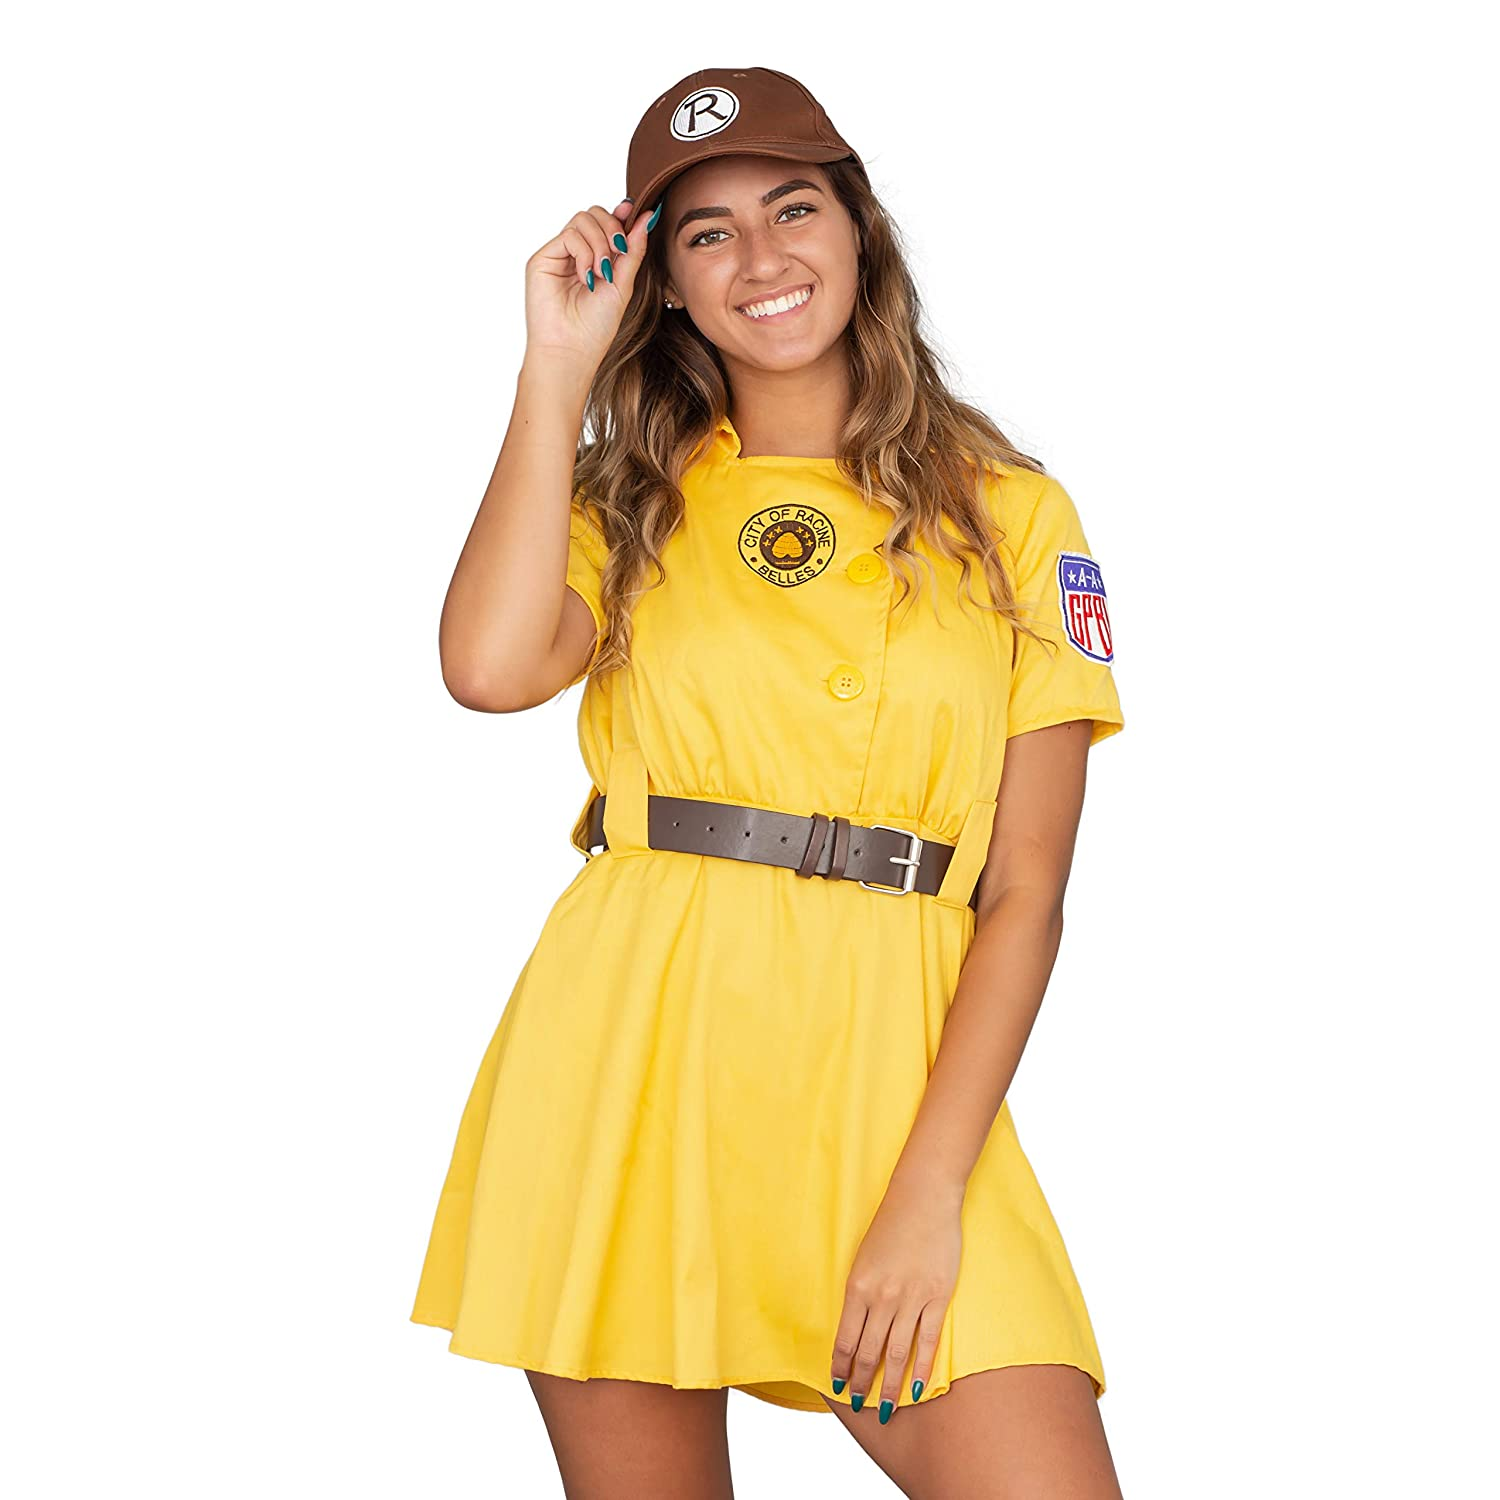 cdcee4c54c7 1940s Costume   Outfit Ideas – 16 Women s Looks Racine Belles AAGPBL  Baseball Womens Costume Dress